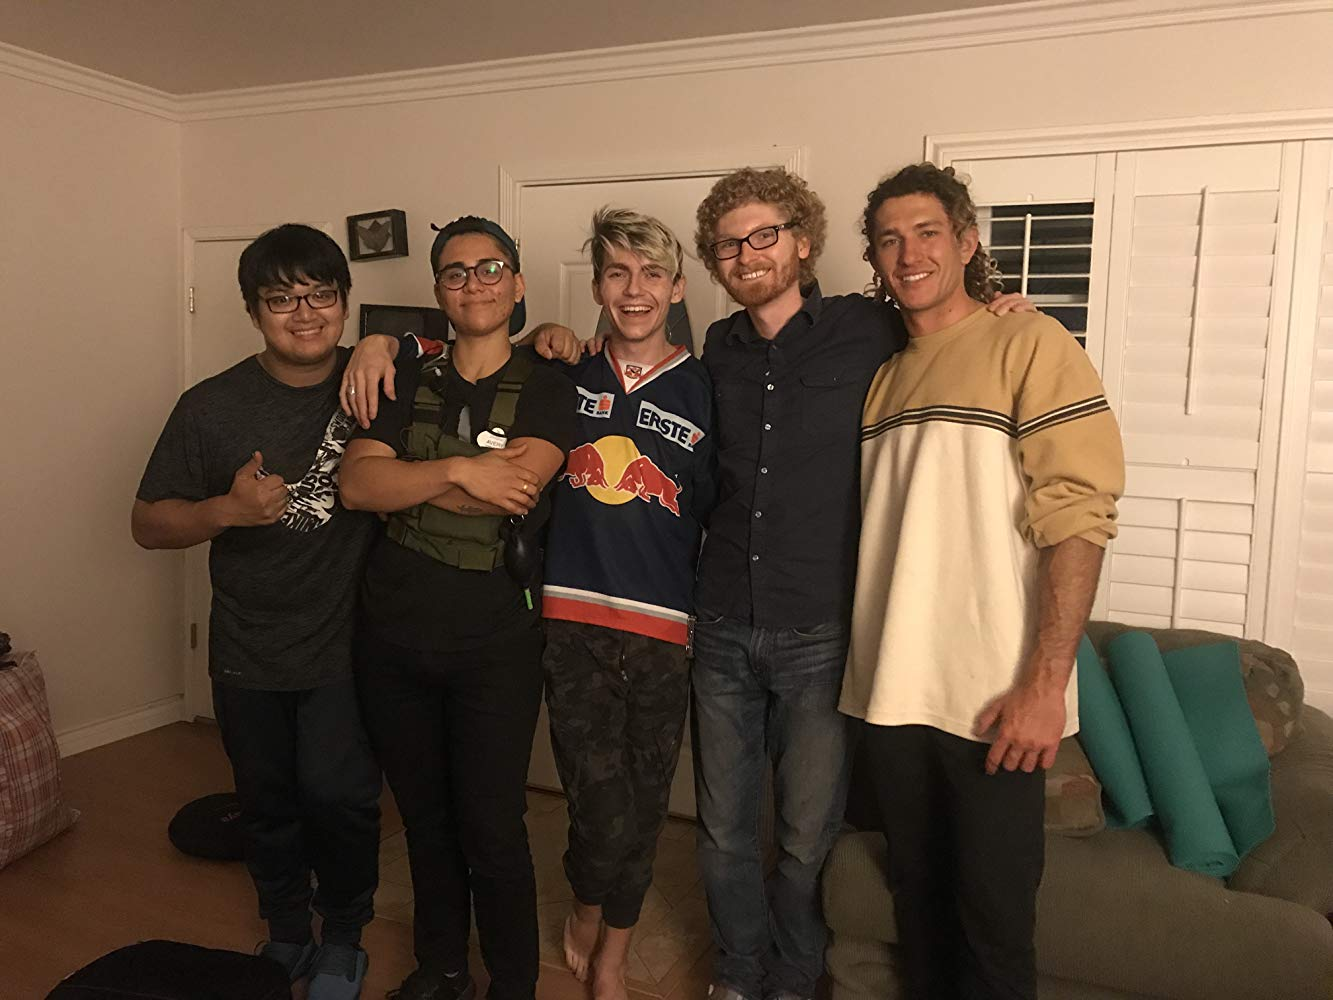 Left to Right - Eric Nguyen (Camera Op), Avery Ramirez (Director of Photography, Producer), Brady Lindsey (Actor, Associate Producer), Landon Coats (Writer, Director, Producer), and Paul Keating (Actor, Model)